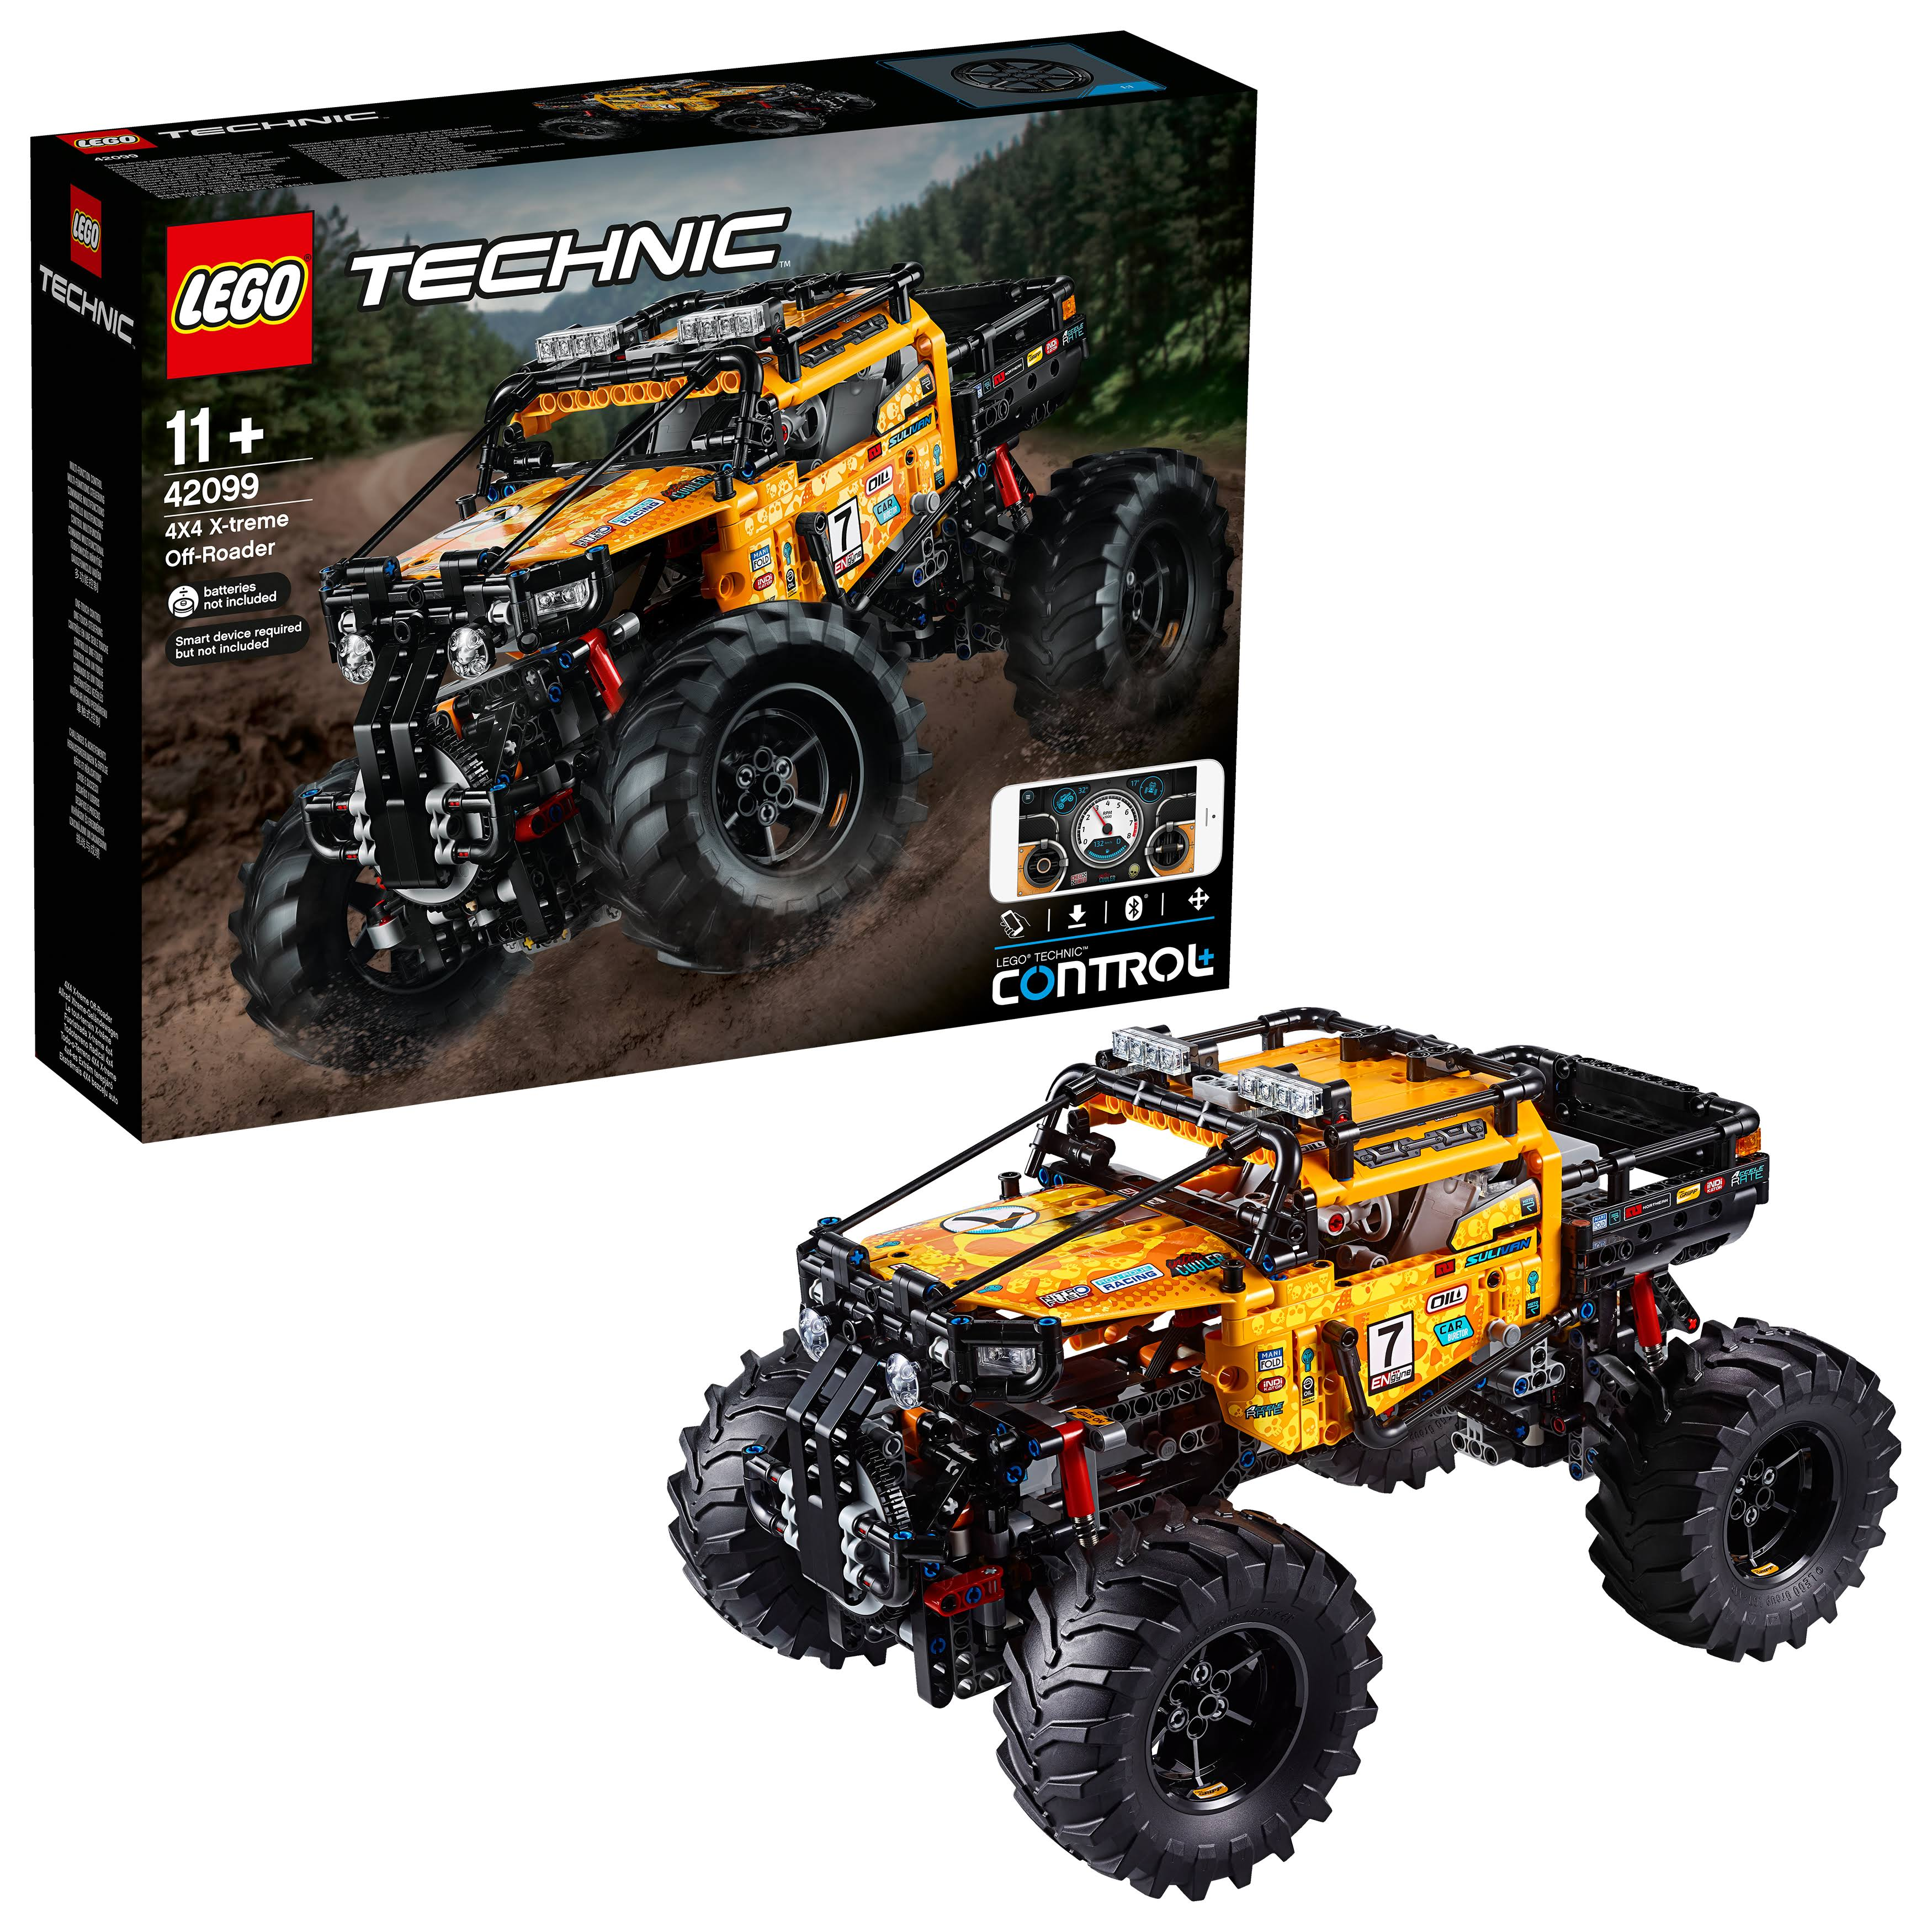 LEego Technic 4X4 X treme Off Roader Toy Truck Building Set